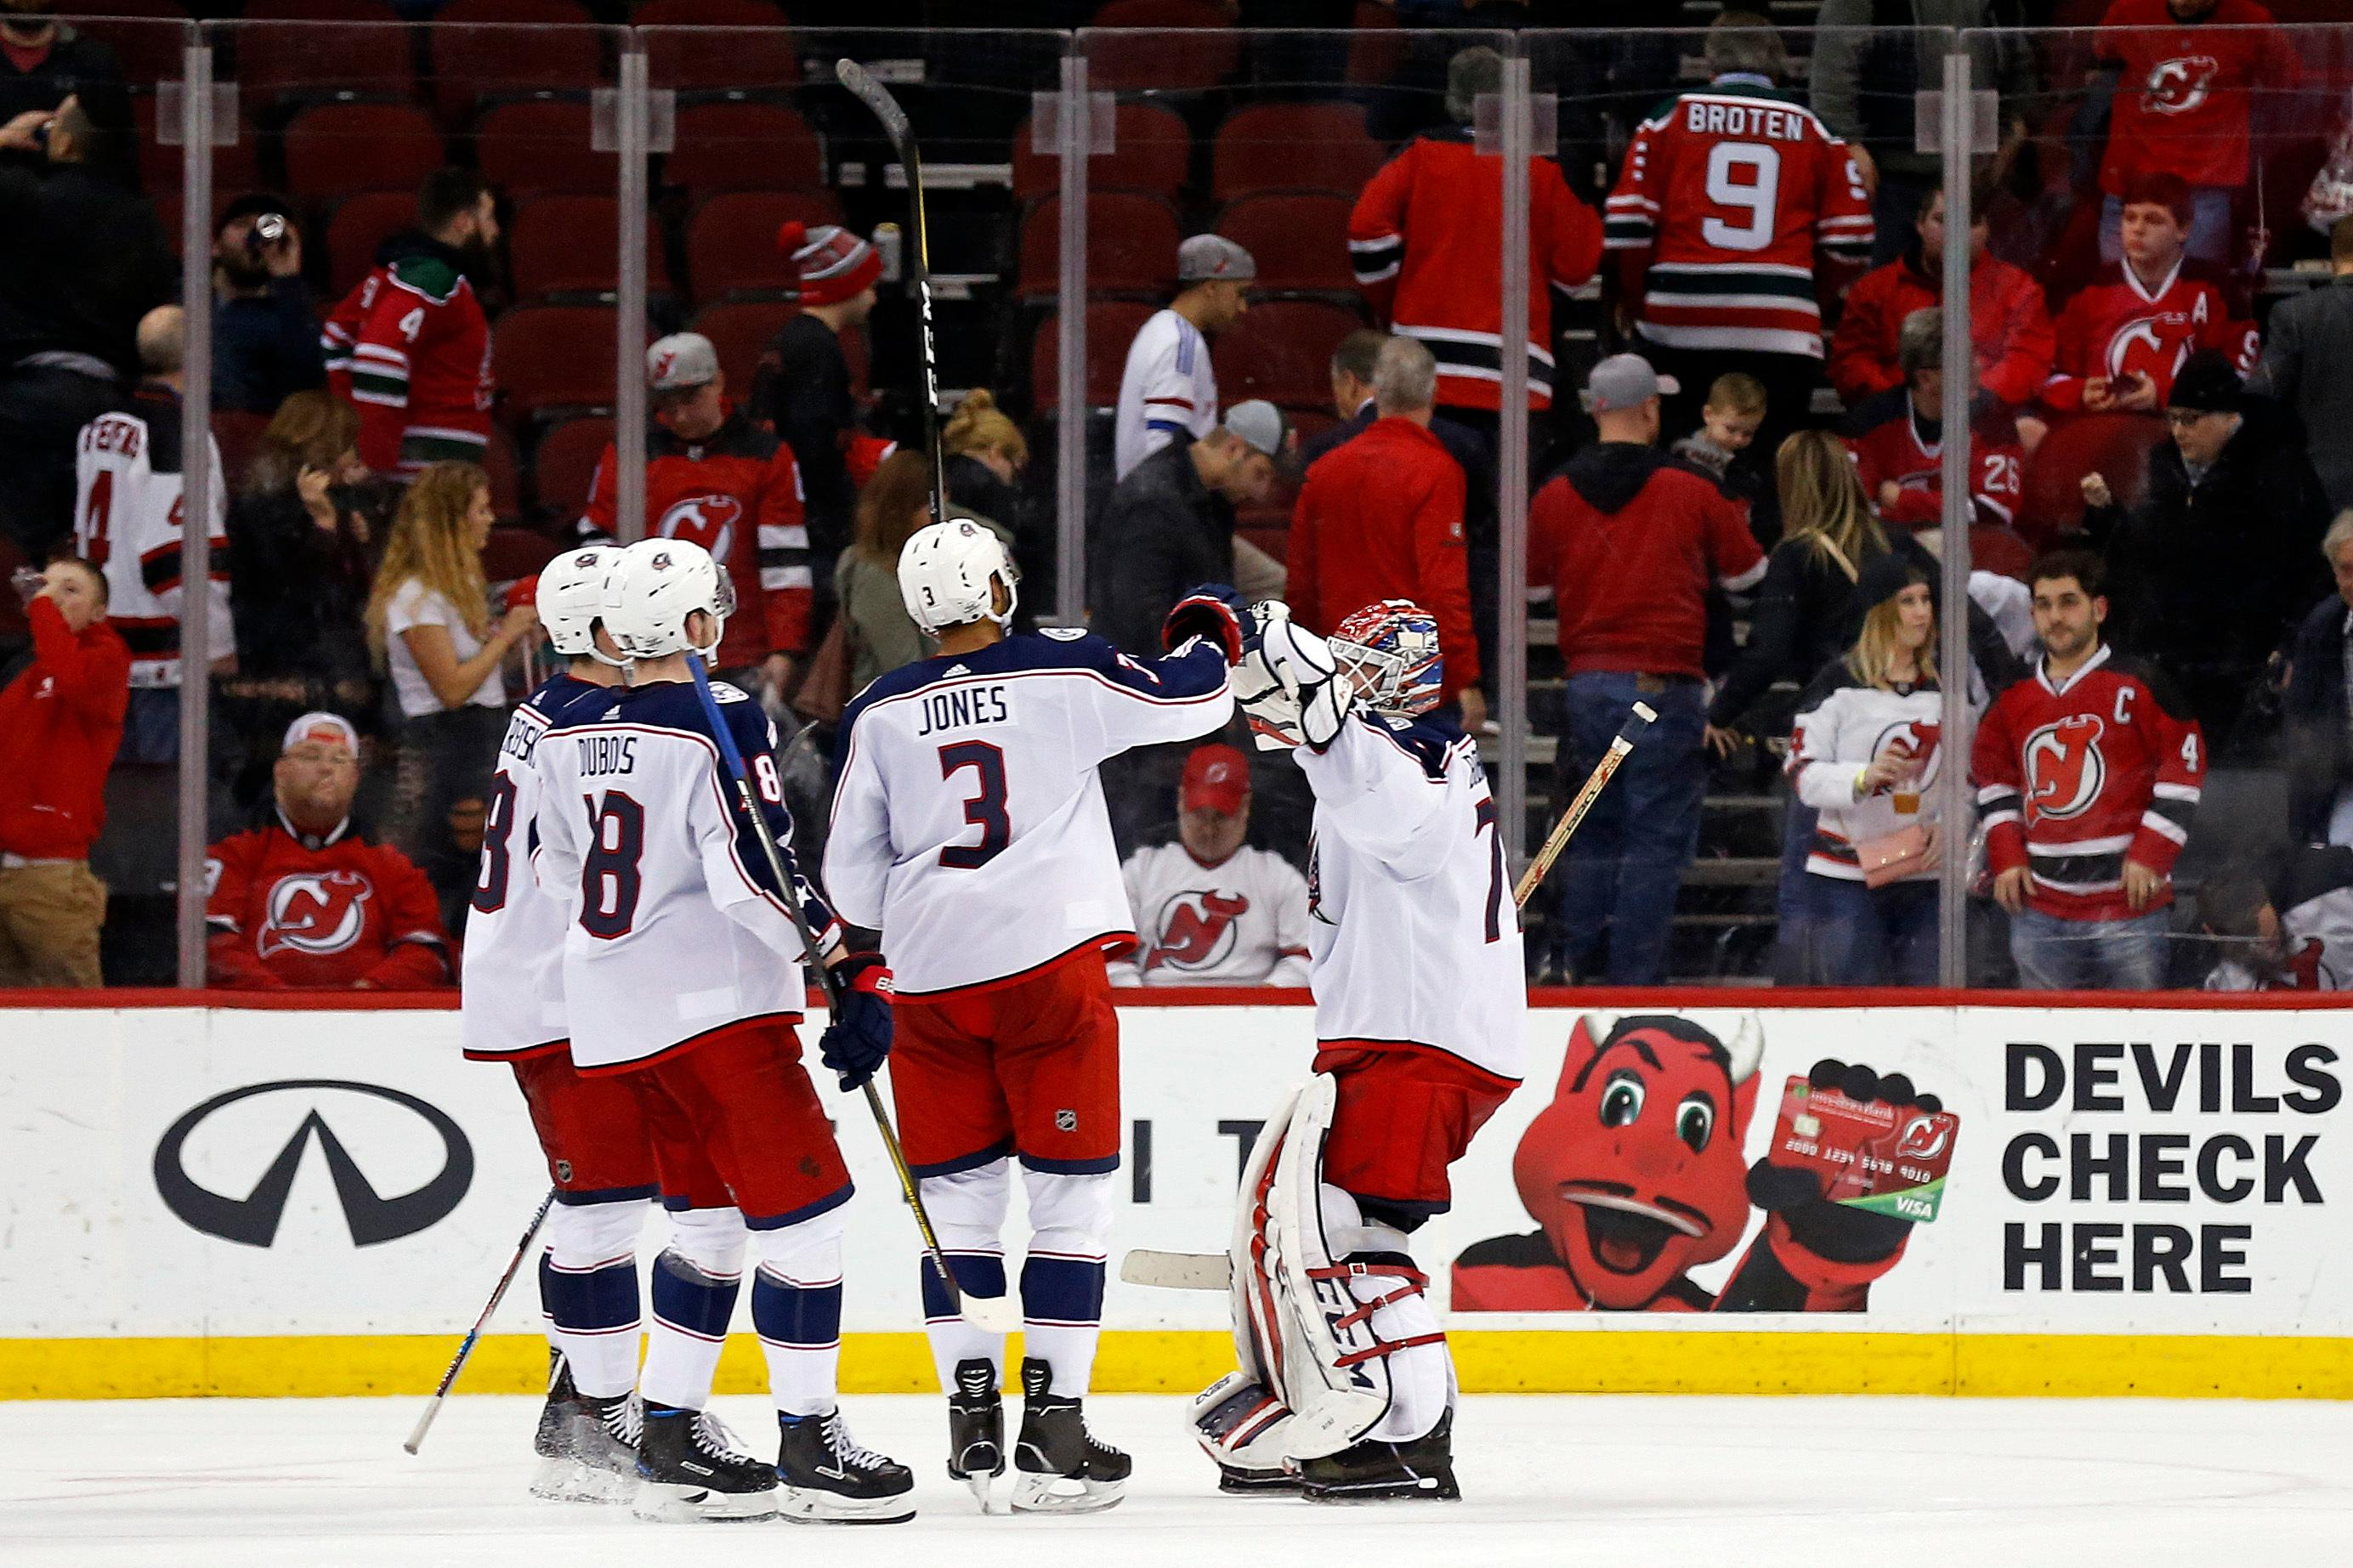 Columbus Blue Jackets goaltender Sergei Bobrovsky celebrates with defenseman Seth Jones (3) after the team's 2-1 win over the New Jersey Devils in an NHL hockey game, Tuesday, Feb. 20, 2018, in Newark, N.J. (AP Photo/Adam Hunger)